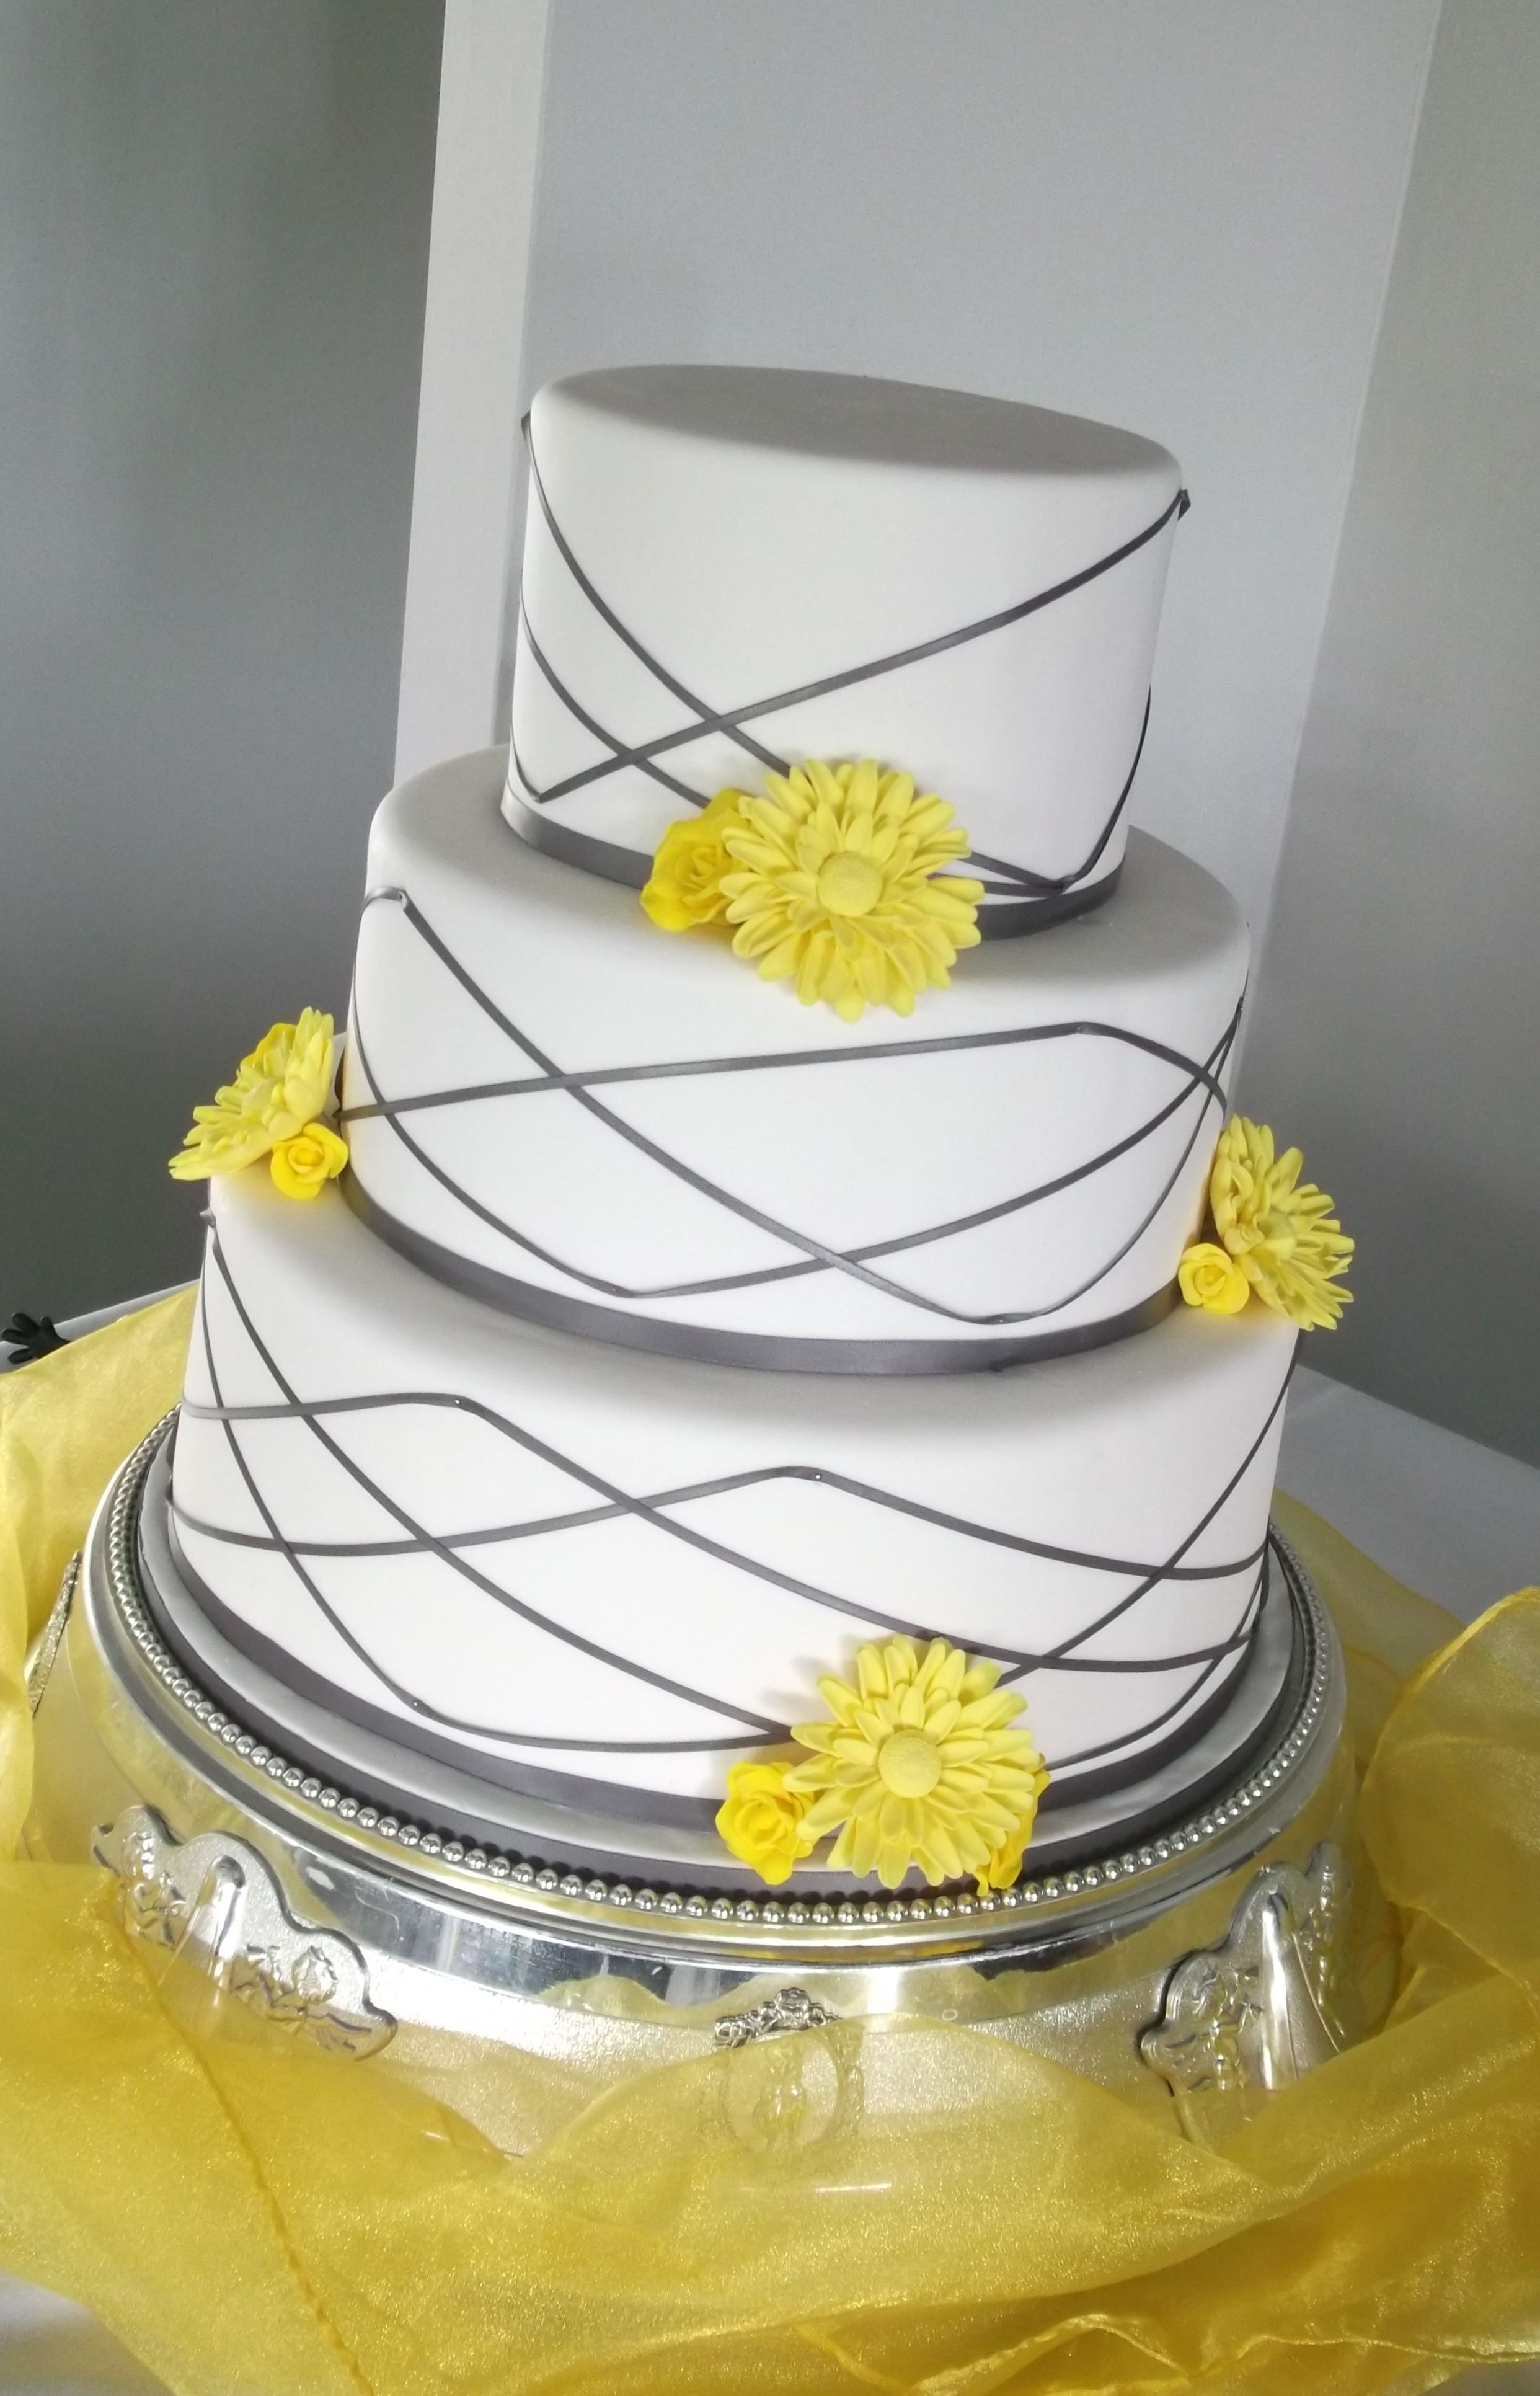 Yellow and grey wedding cake | Bake at One Eighty Cakes | Pinterest ...